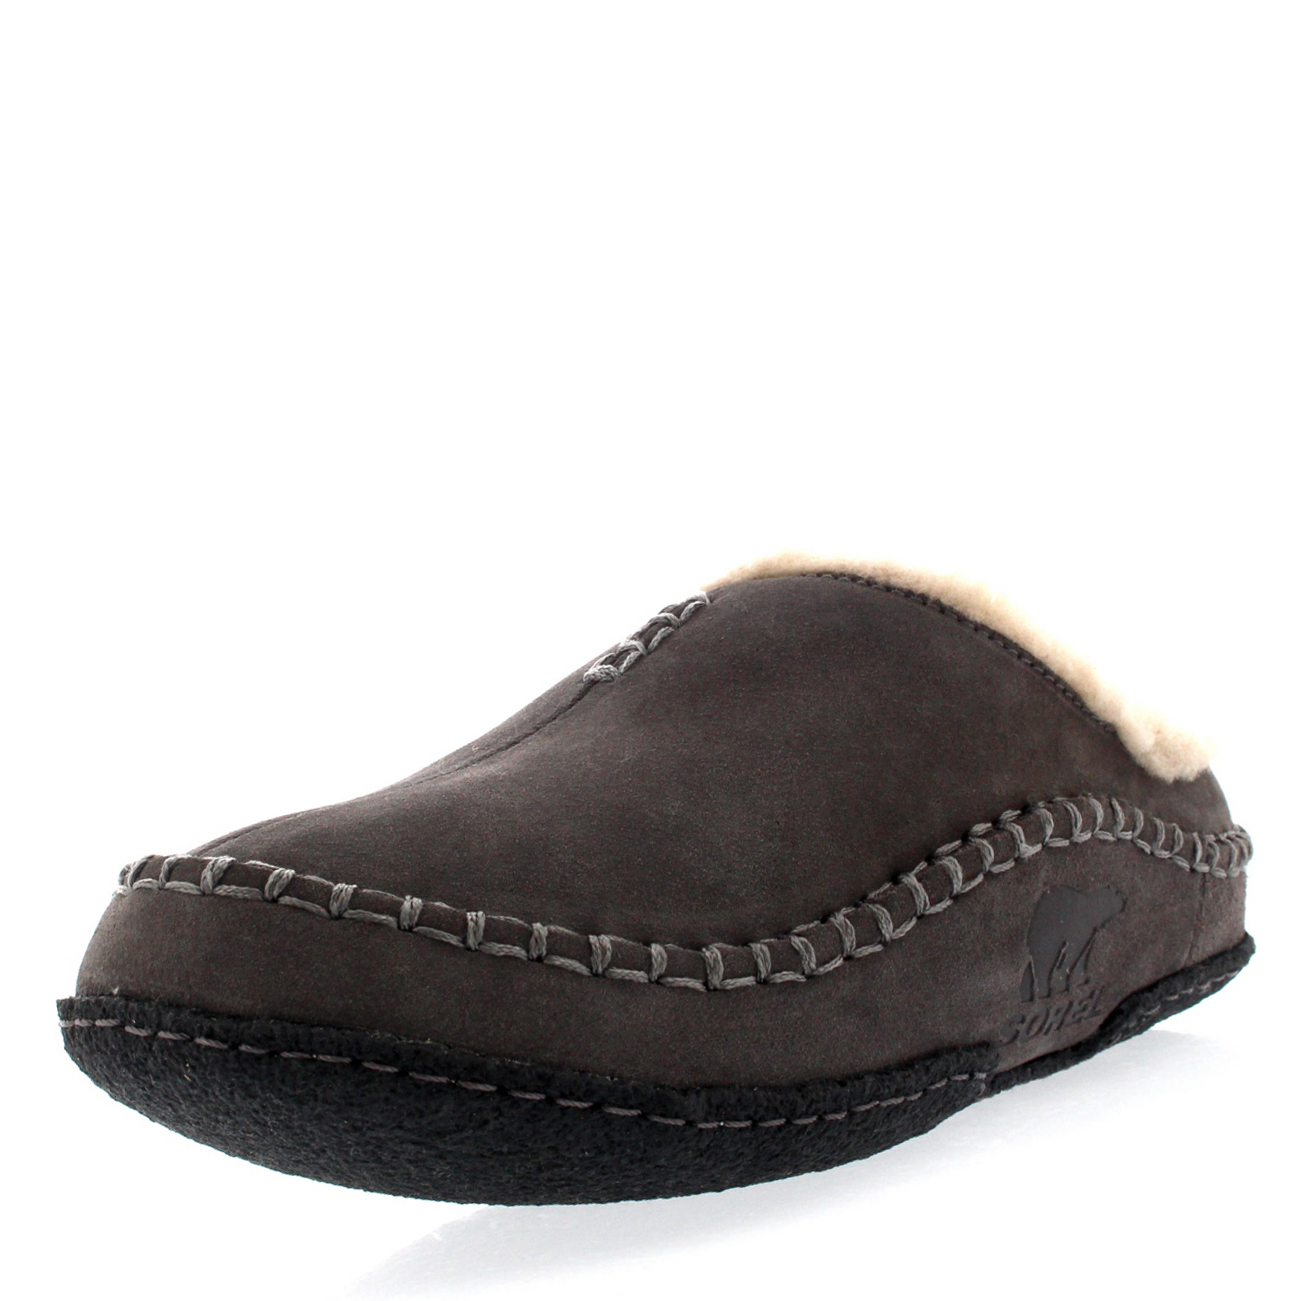 Mens Bedroom Slippers Leather Mens Sorel Falcon Ridge Casual Fur Suede Winter Shoes House